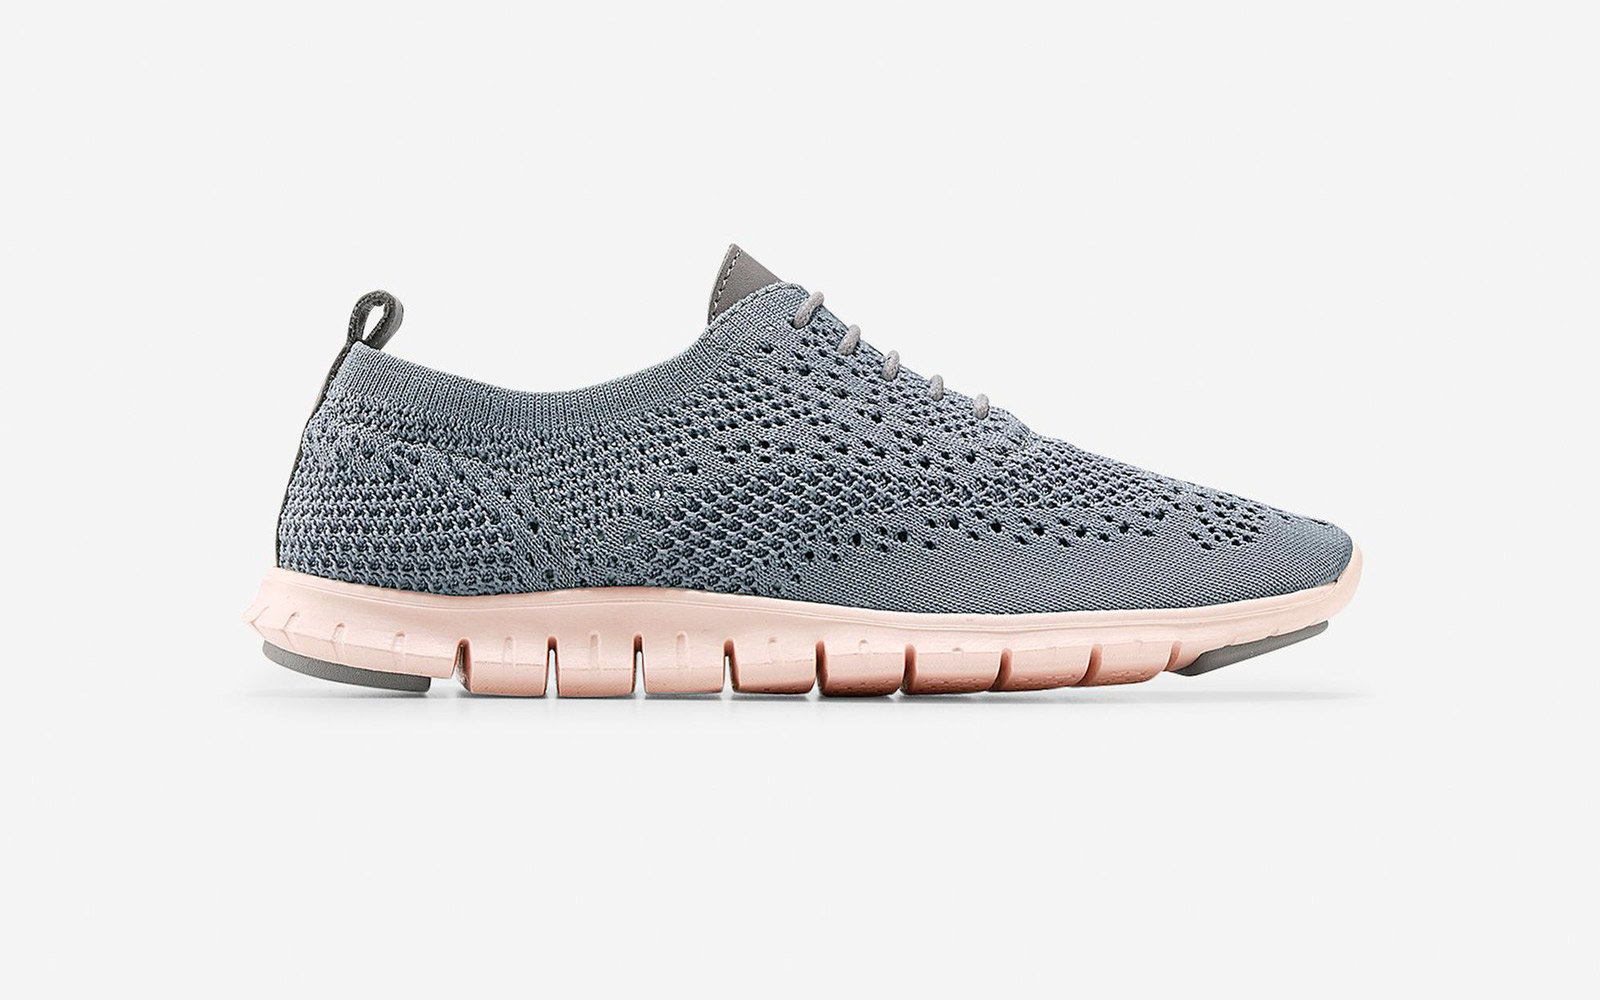 770b3e102c4 Cole Haan Zerogrand Wingtip Oxfords. arch support shoes ...